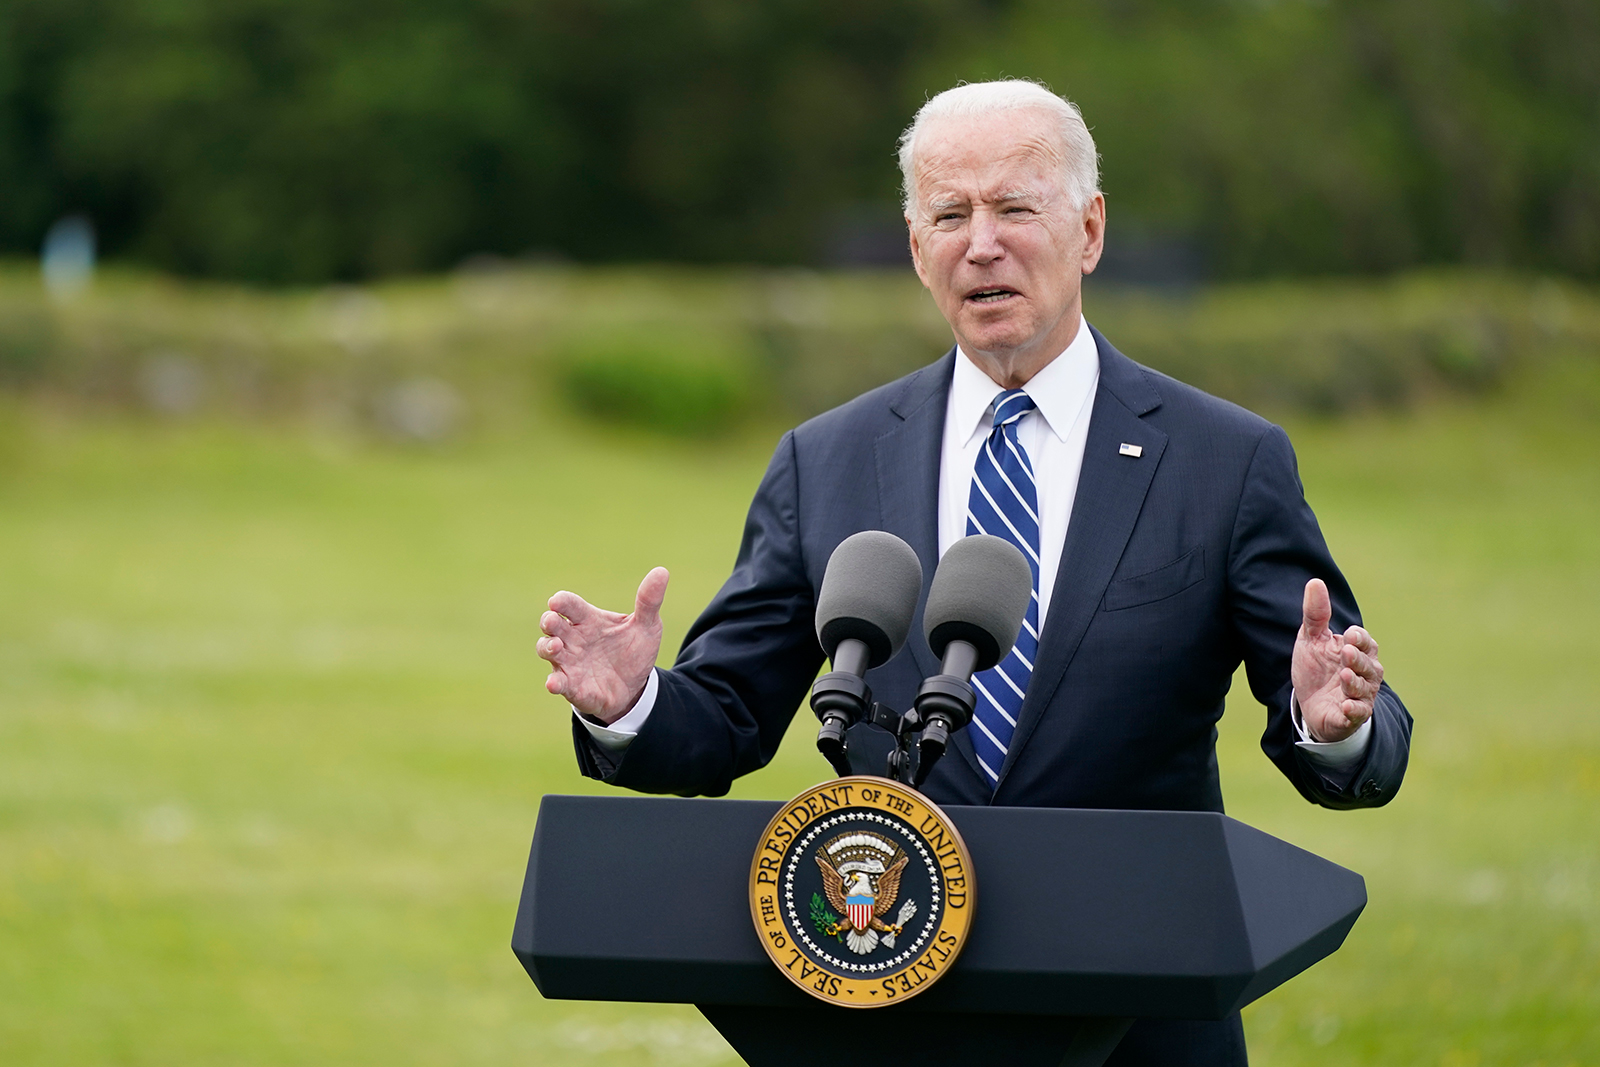 President Joe Biden speaks about his administration's global Covid-19 vaccination efforts ahead of the G7 summit, June 10, in St. Ives, England.